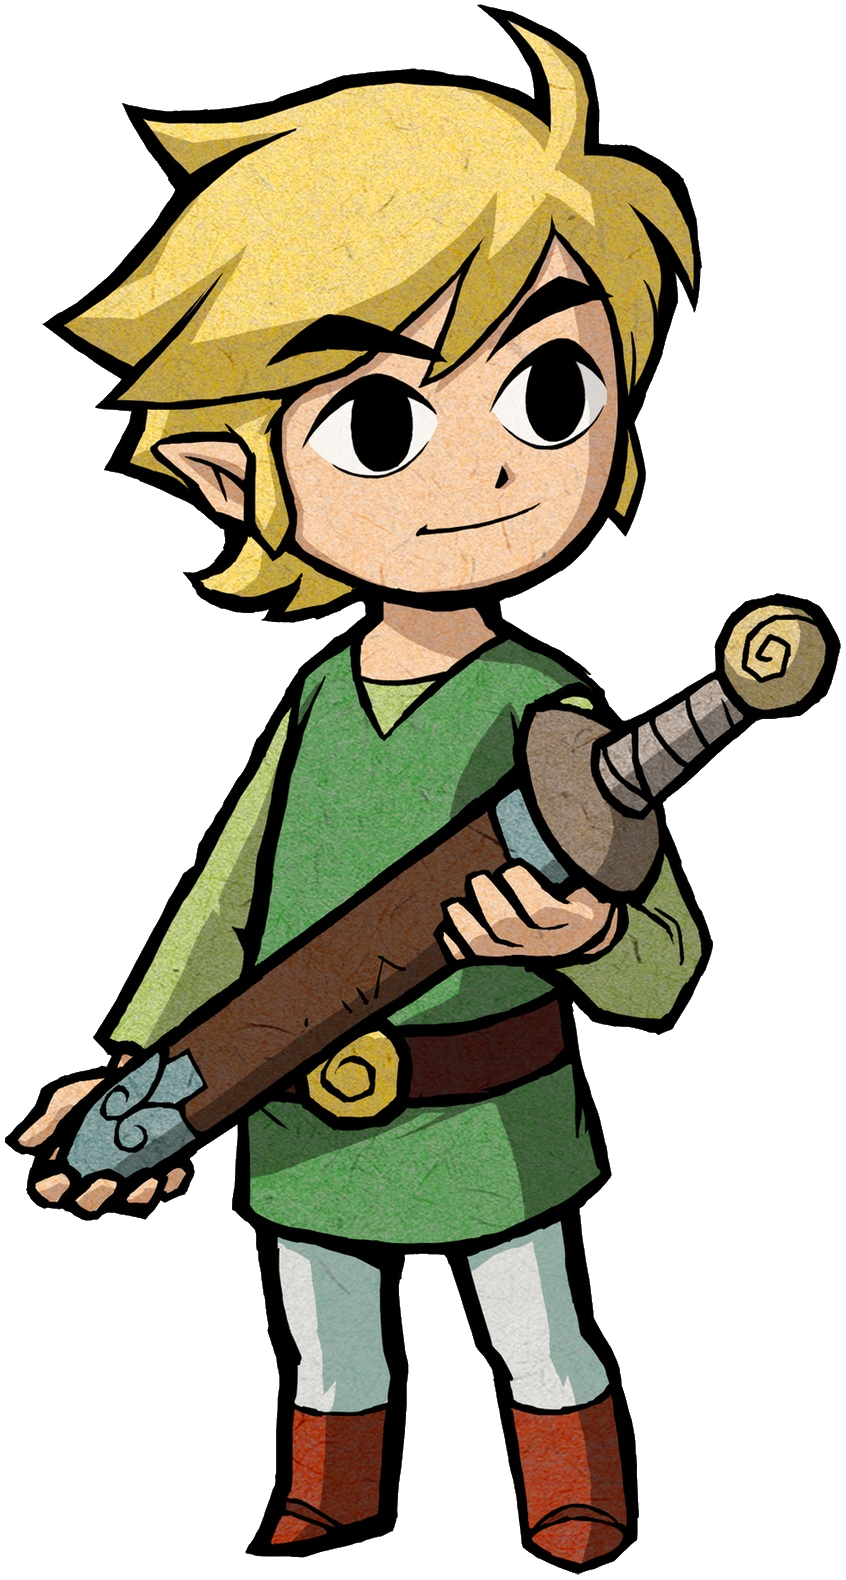 Link png. Image artwork the minish